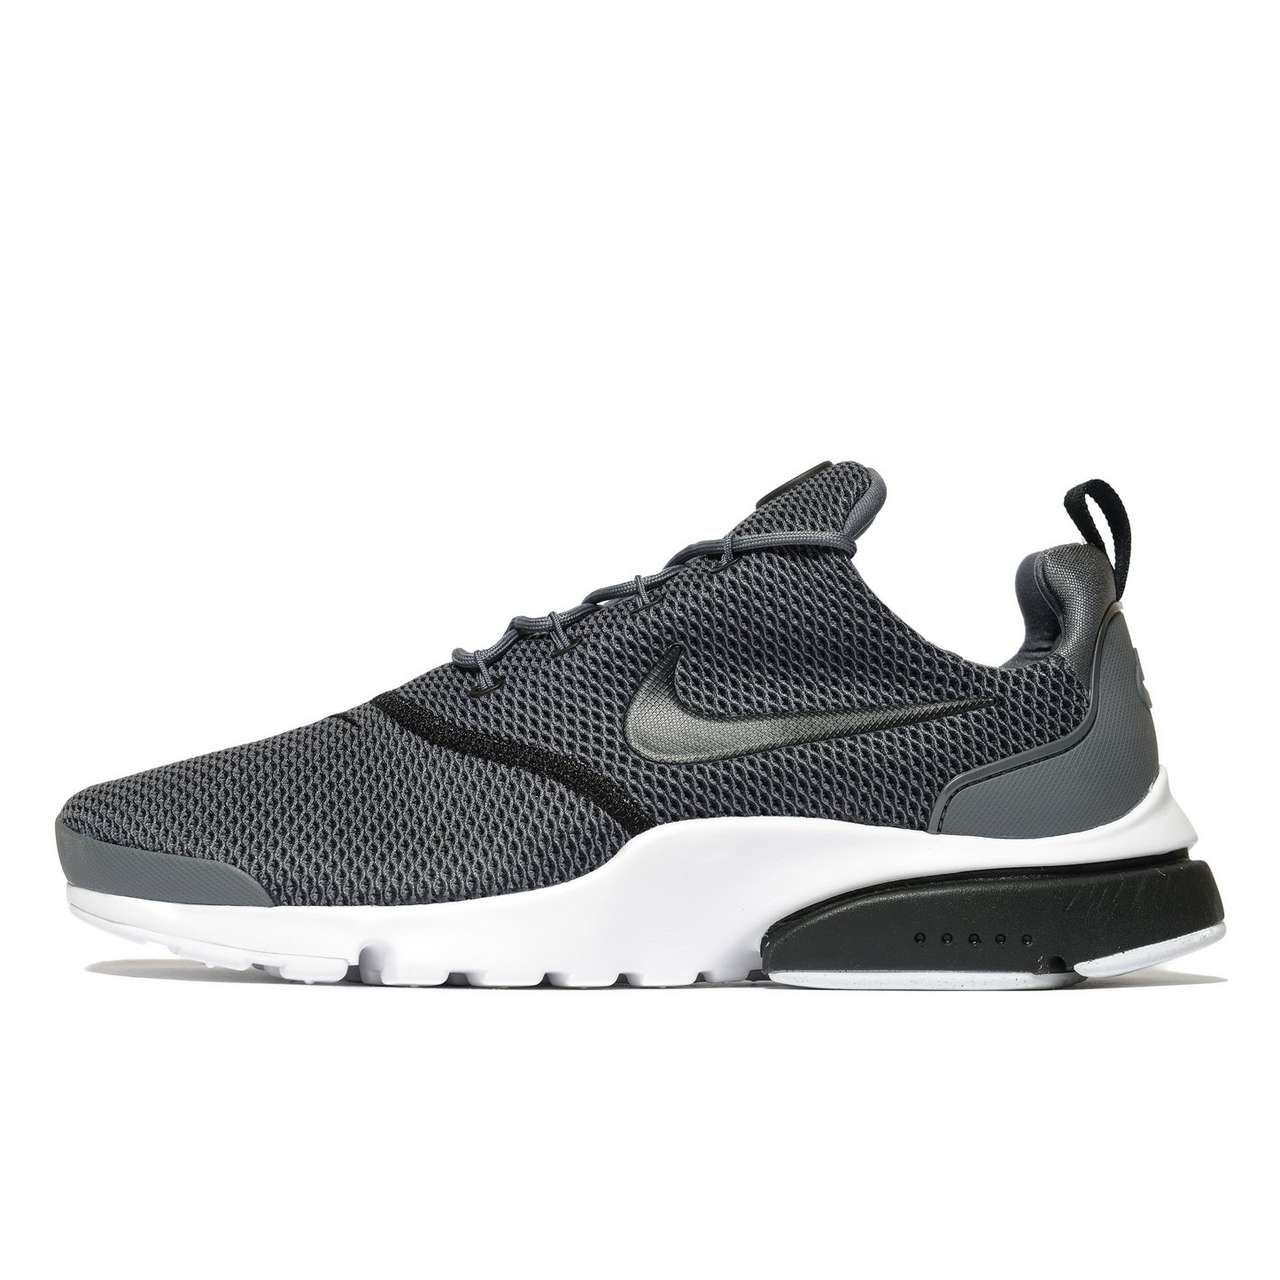 new collection free shipping nice shoes Nike Presto Fly SE | Shoes | Nike, Sneakers nike, Nike presto